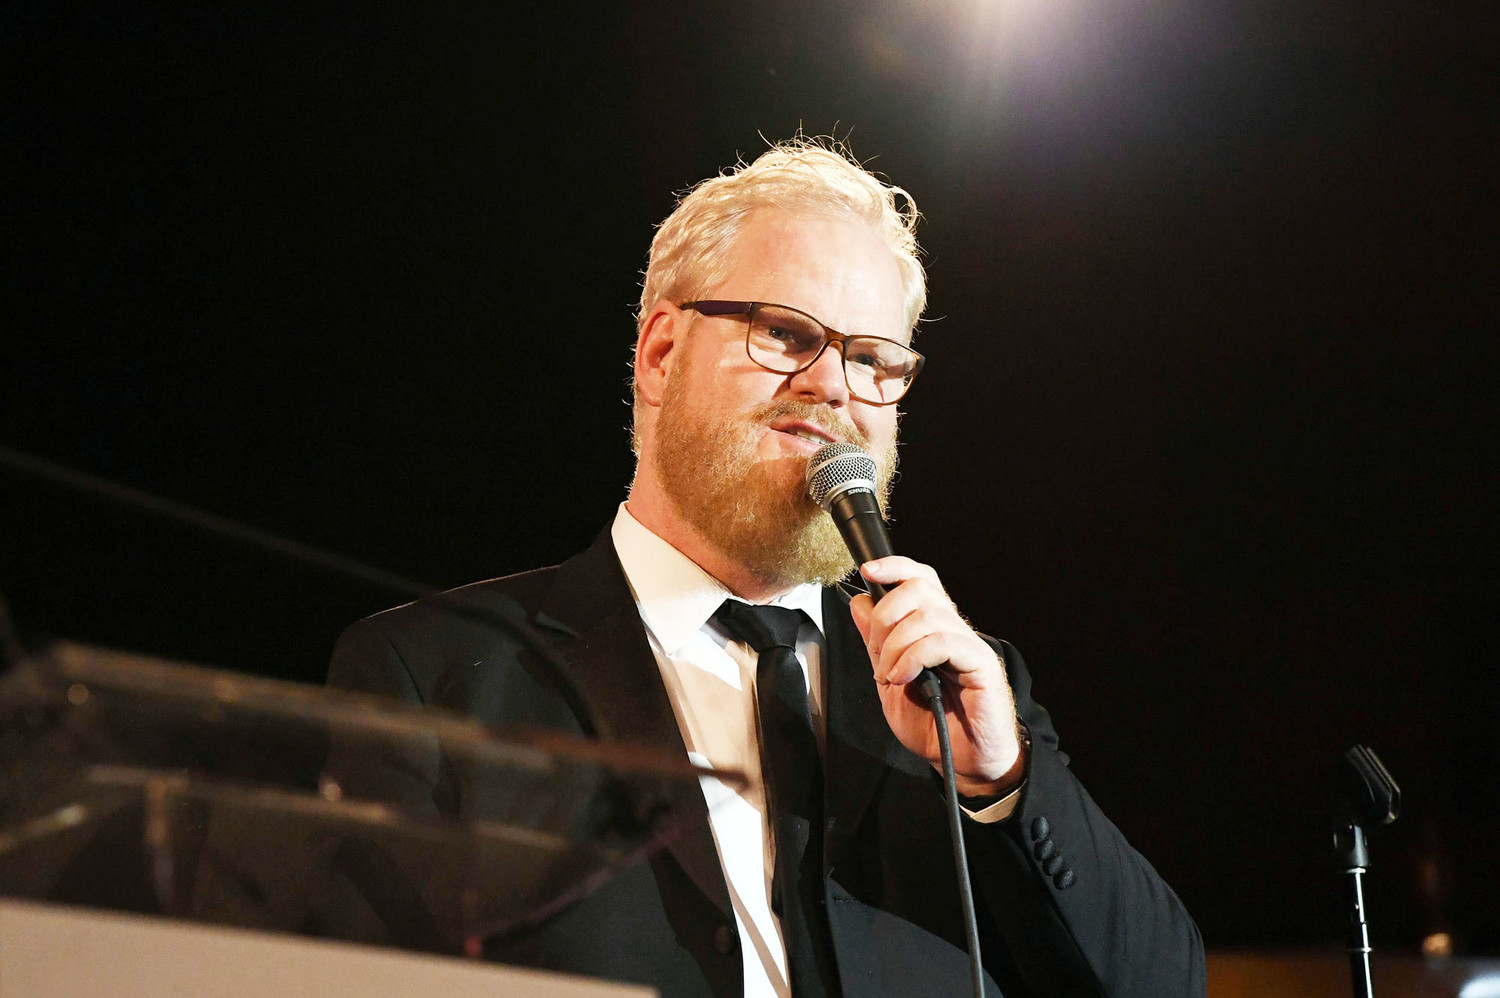 Comedian and actor Jim Gaffigan performs at the gala.